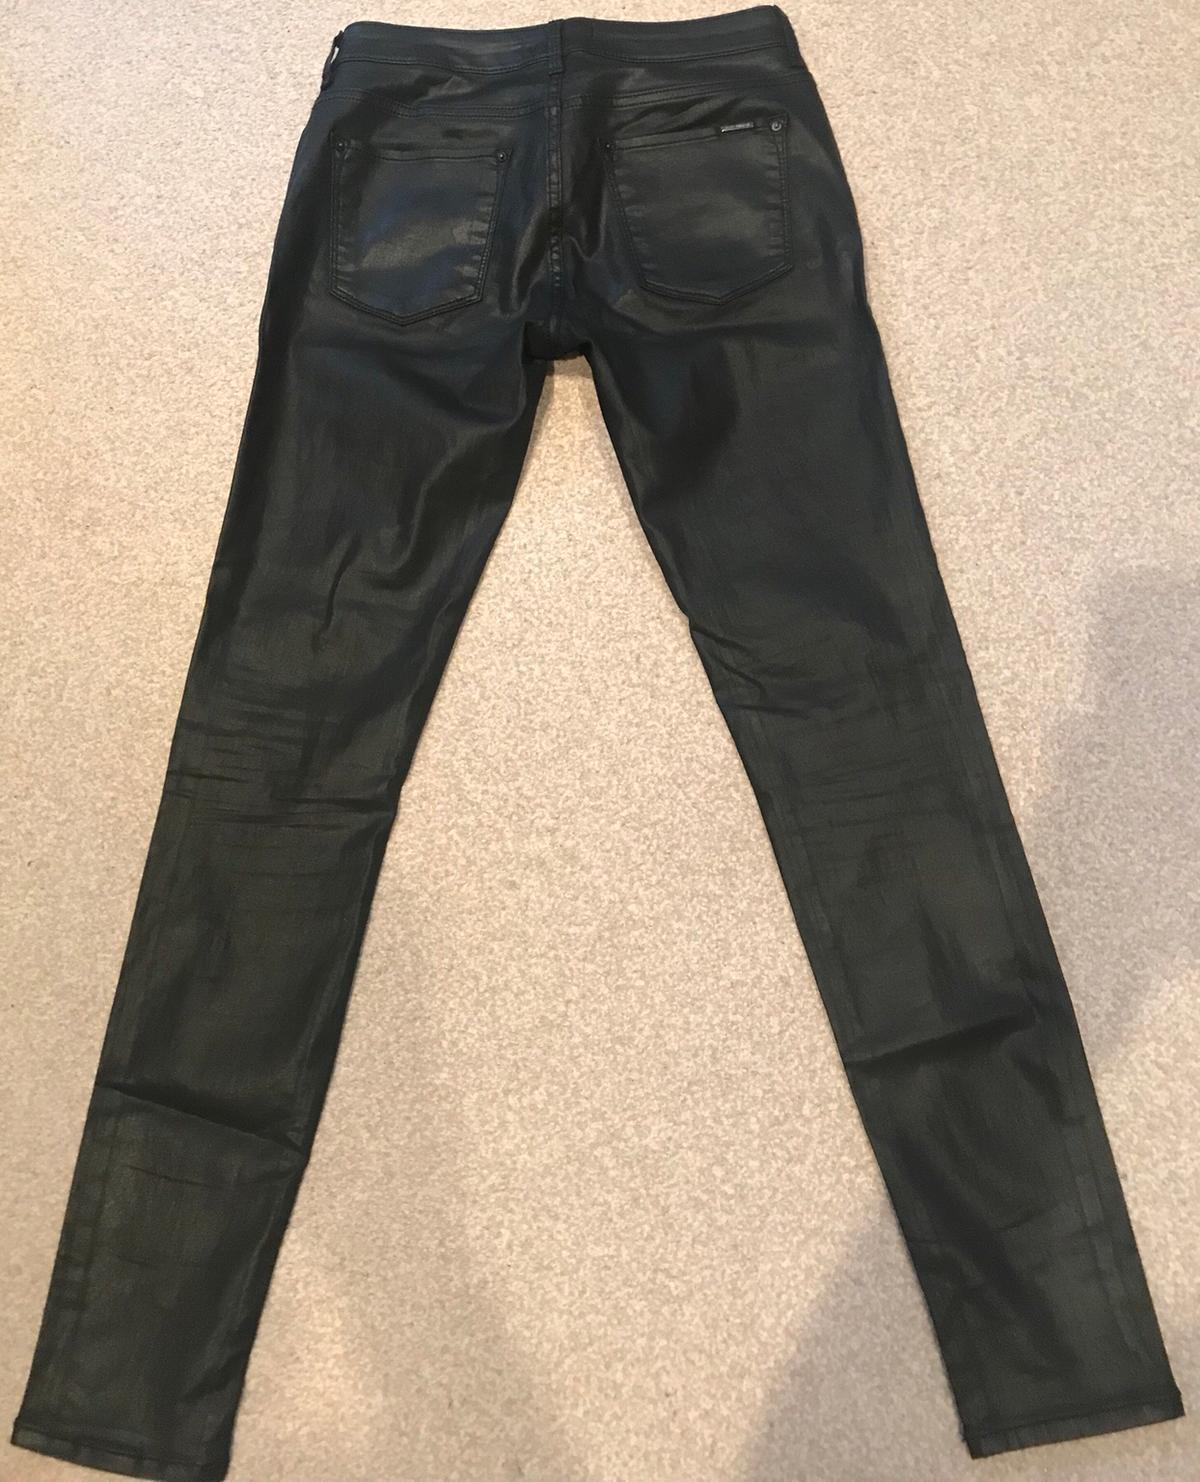 no sale tax new high quality buying new Women Zara leather trousers size 8